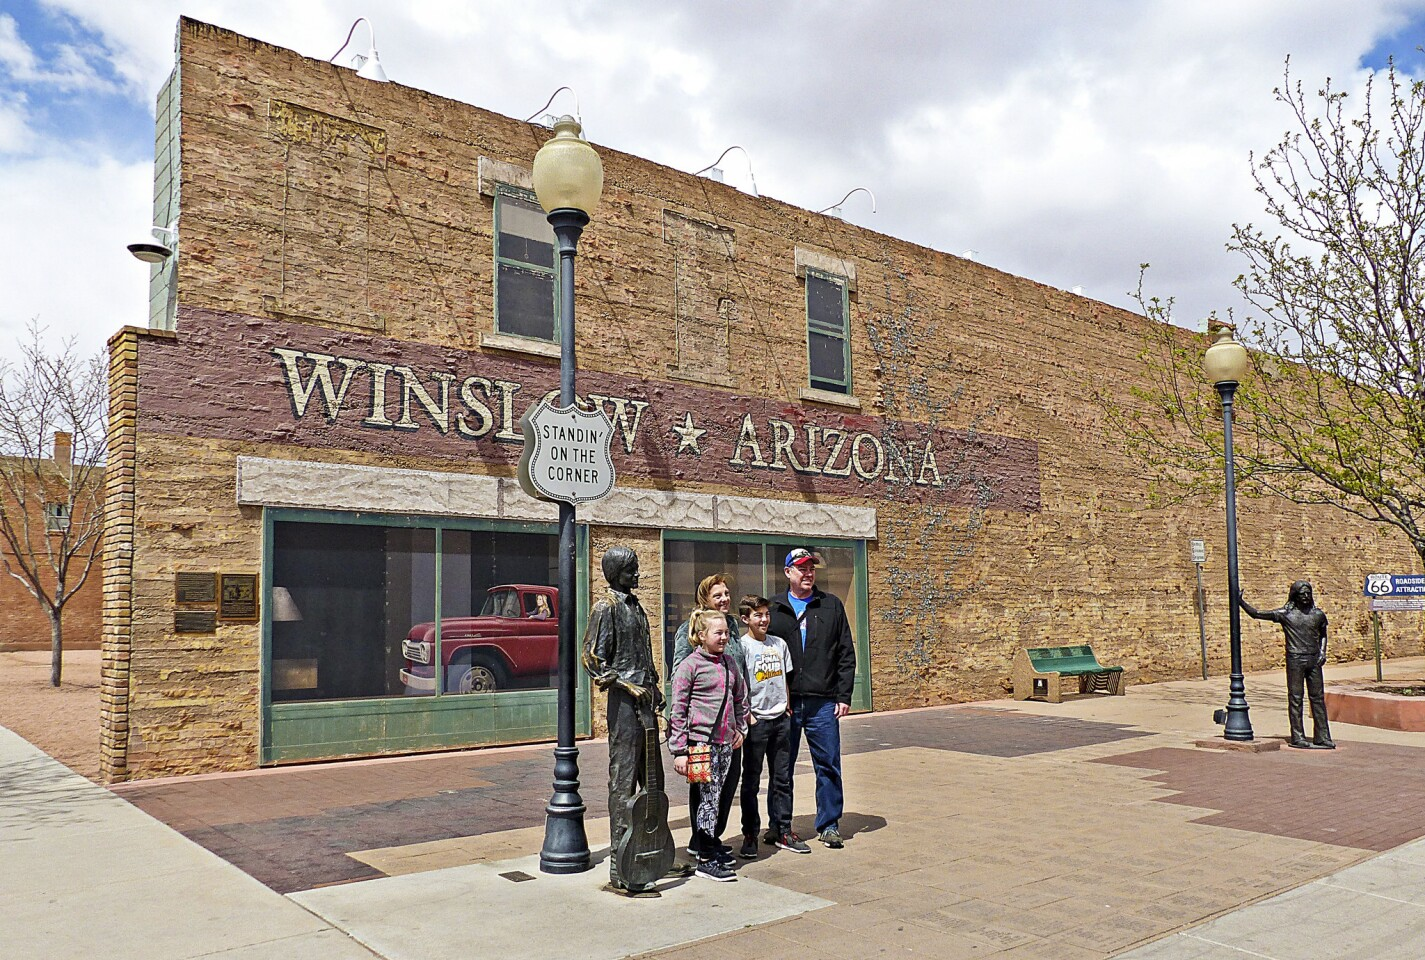 """On a corner in Winslow, Ariz., two blocks from the La Posada hotel, visitors snap photos, nostalgically recalling the popular 1970s song """"Take It Easy,"""" written by Glenn Frey and Jackson Browne and recorded by Frey and his Eagles bandmates."""